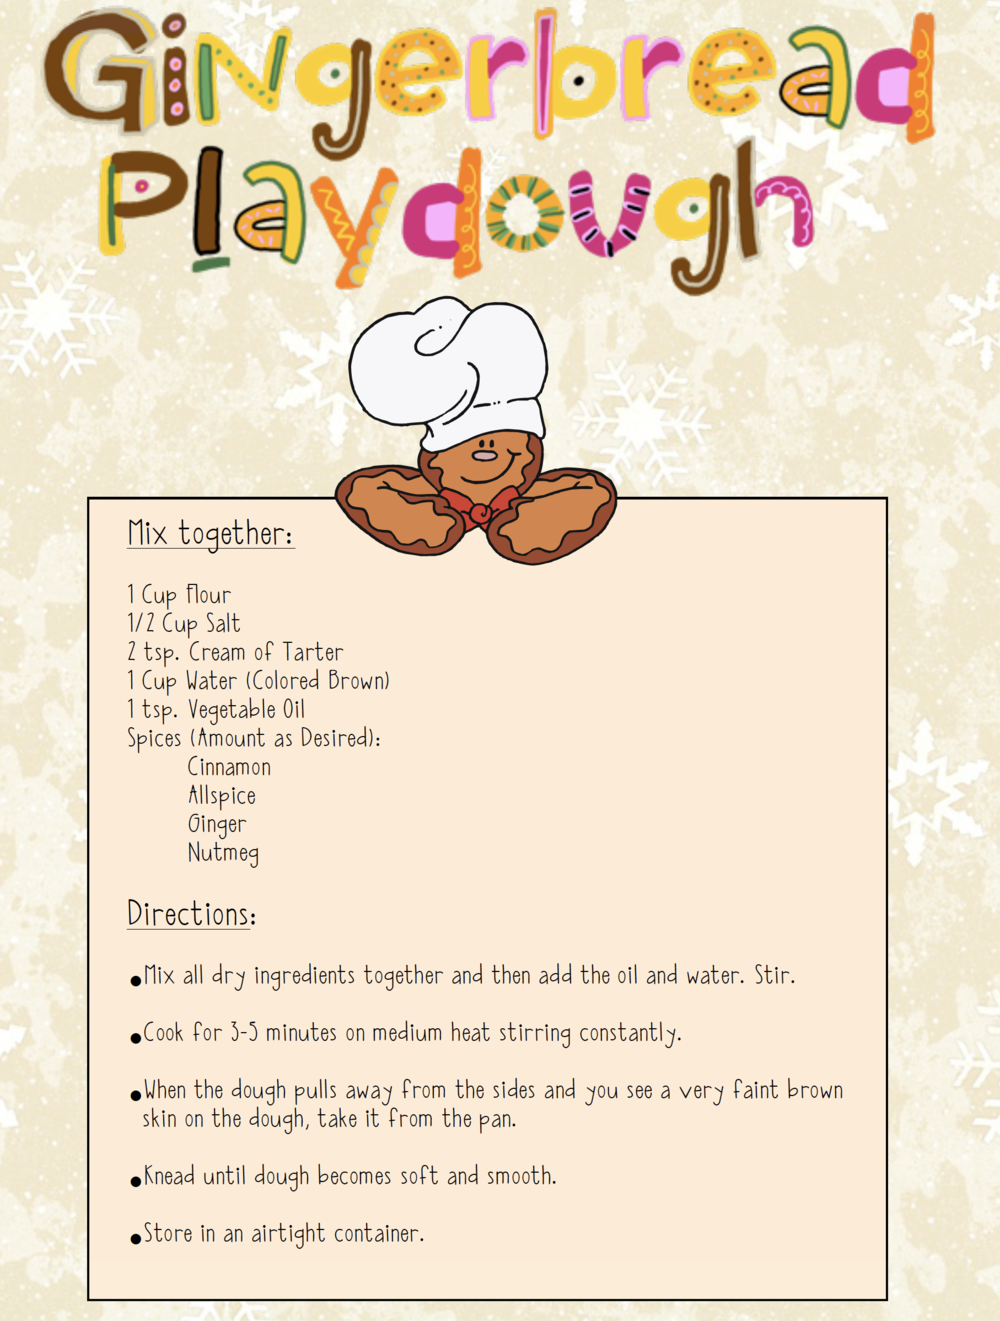 gingerbread-playdough-recipe.png